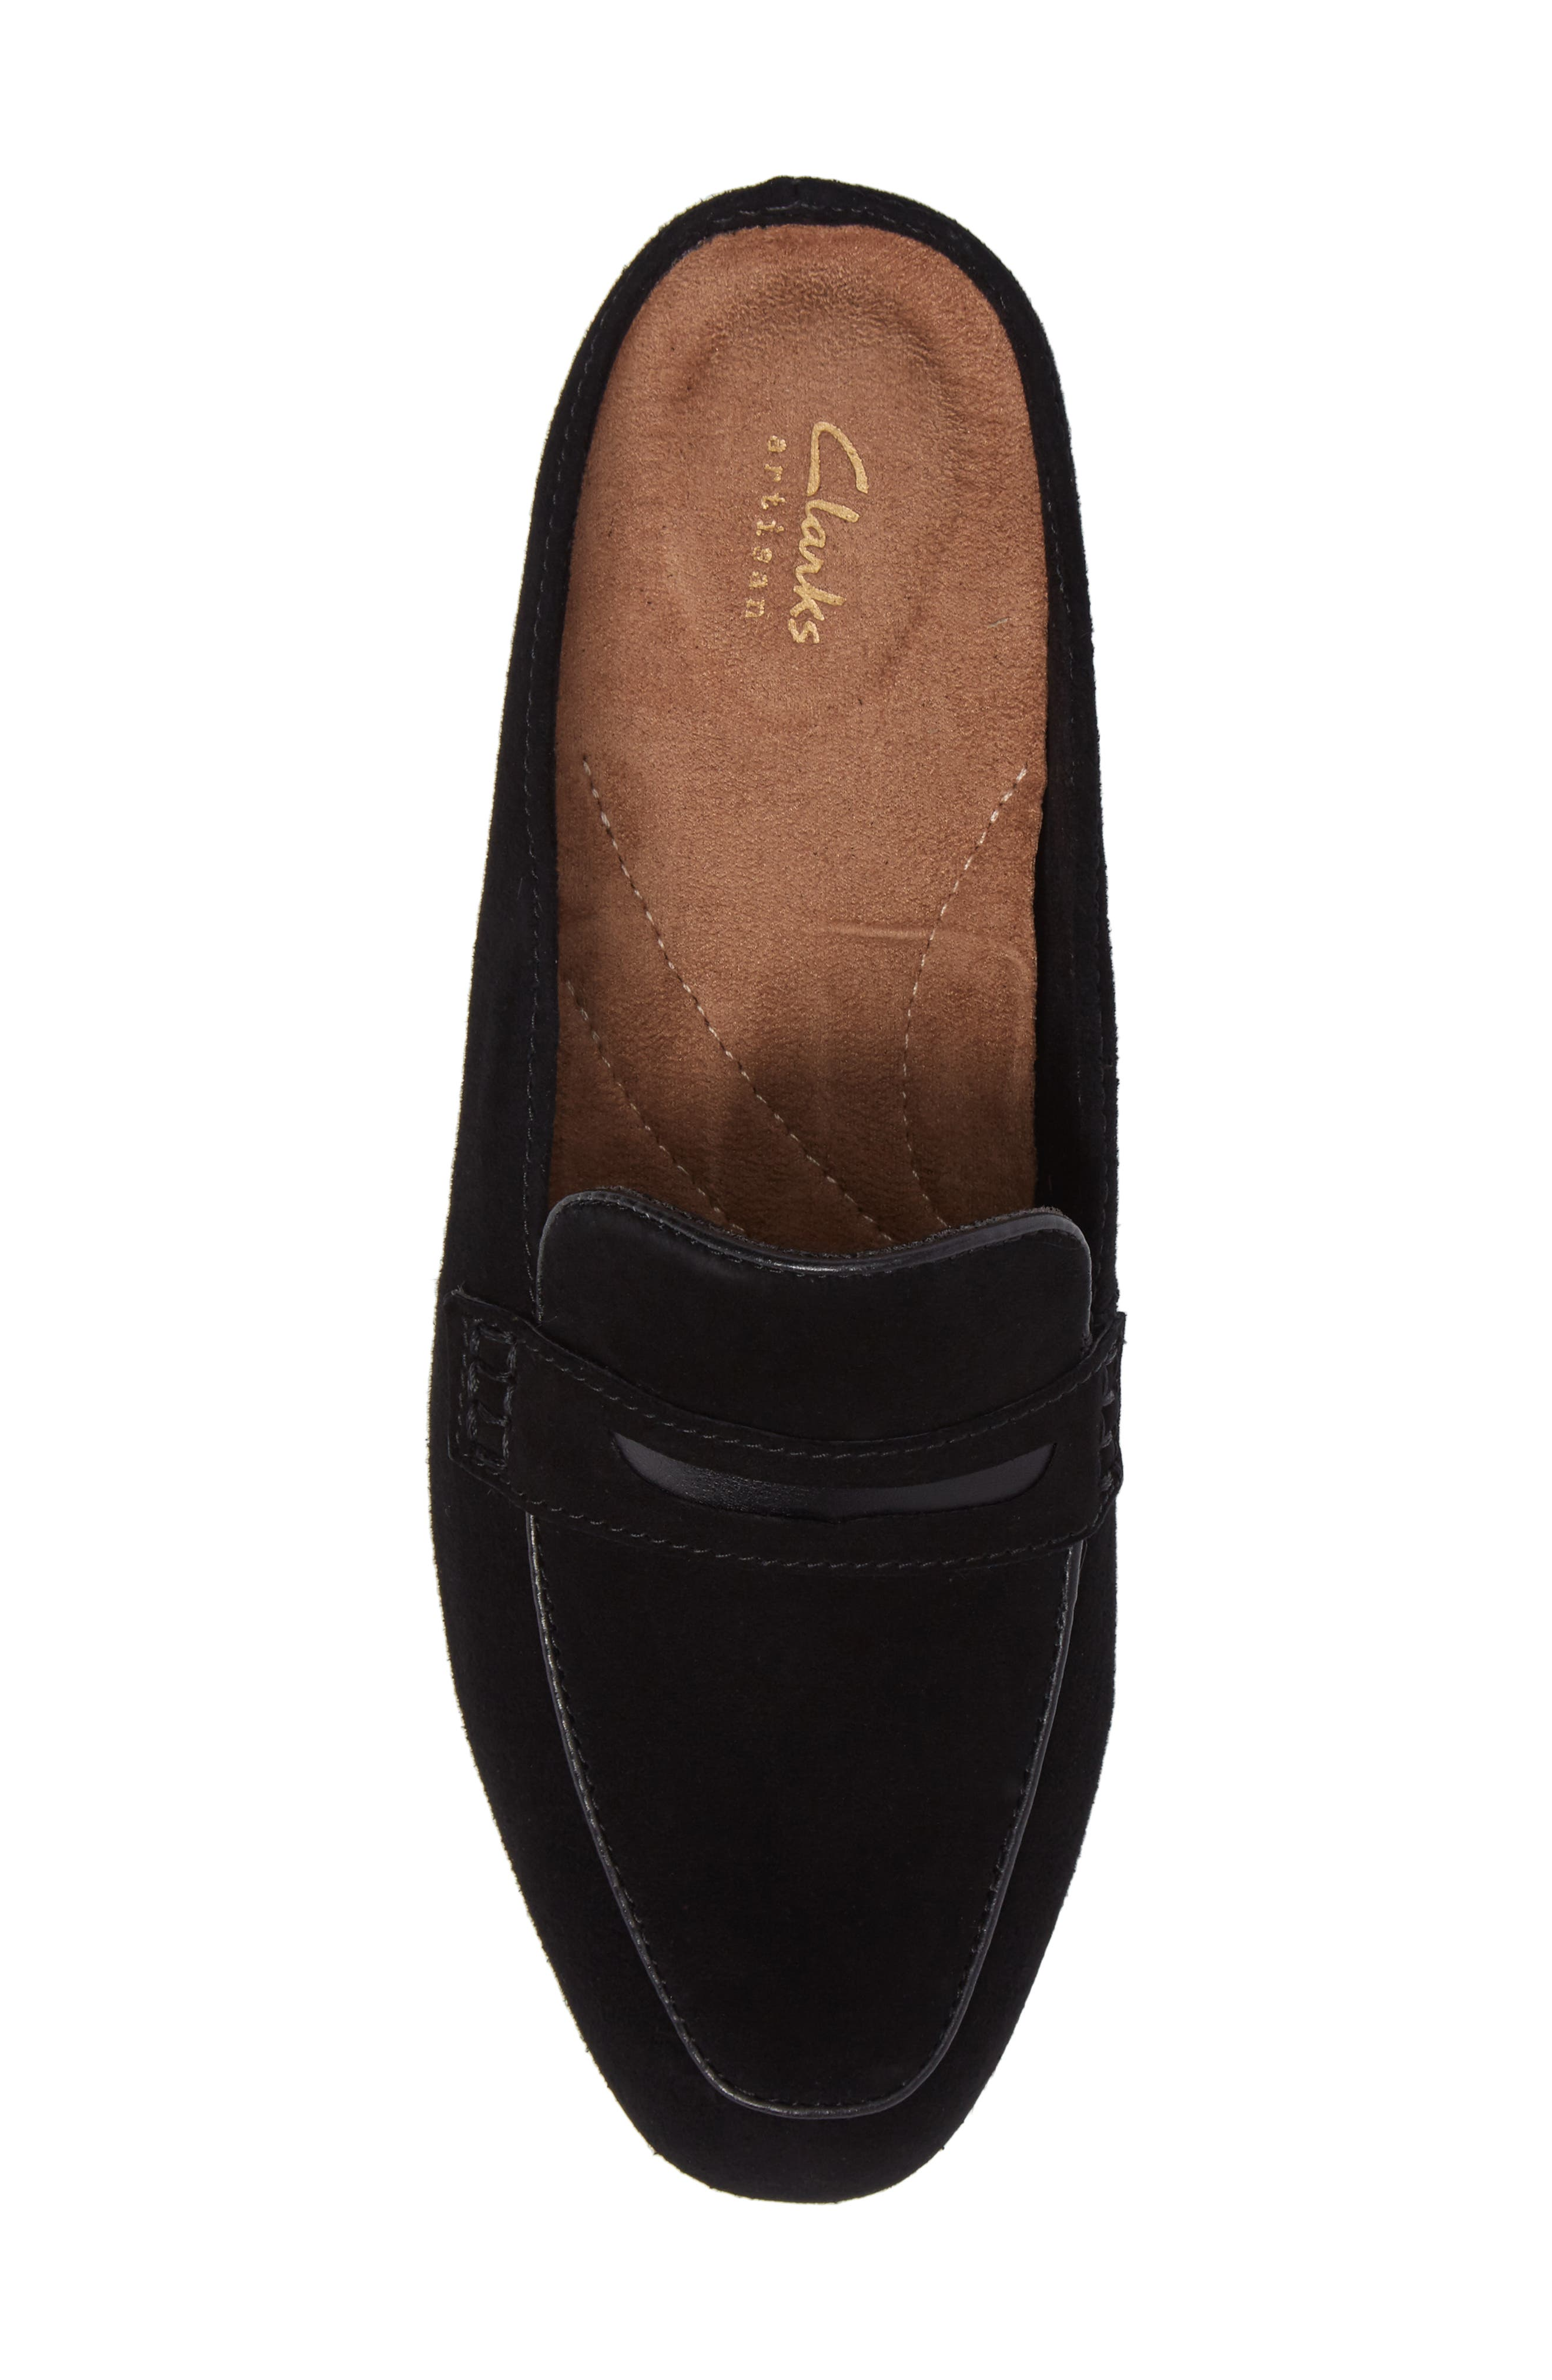 Keesha Donna Loafer Mule,                             Alternate thumbnail 5, color,                             007